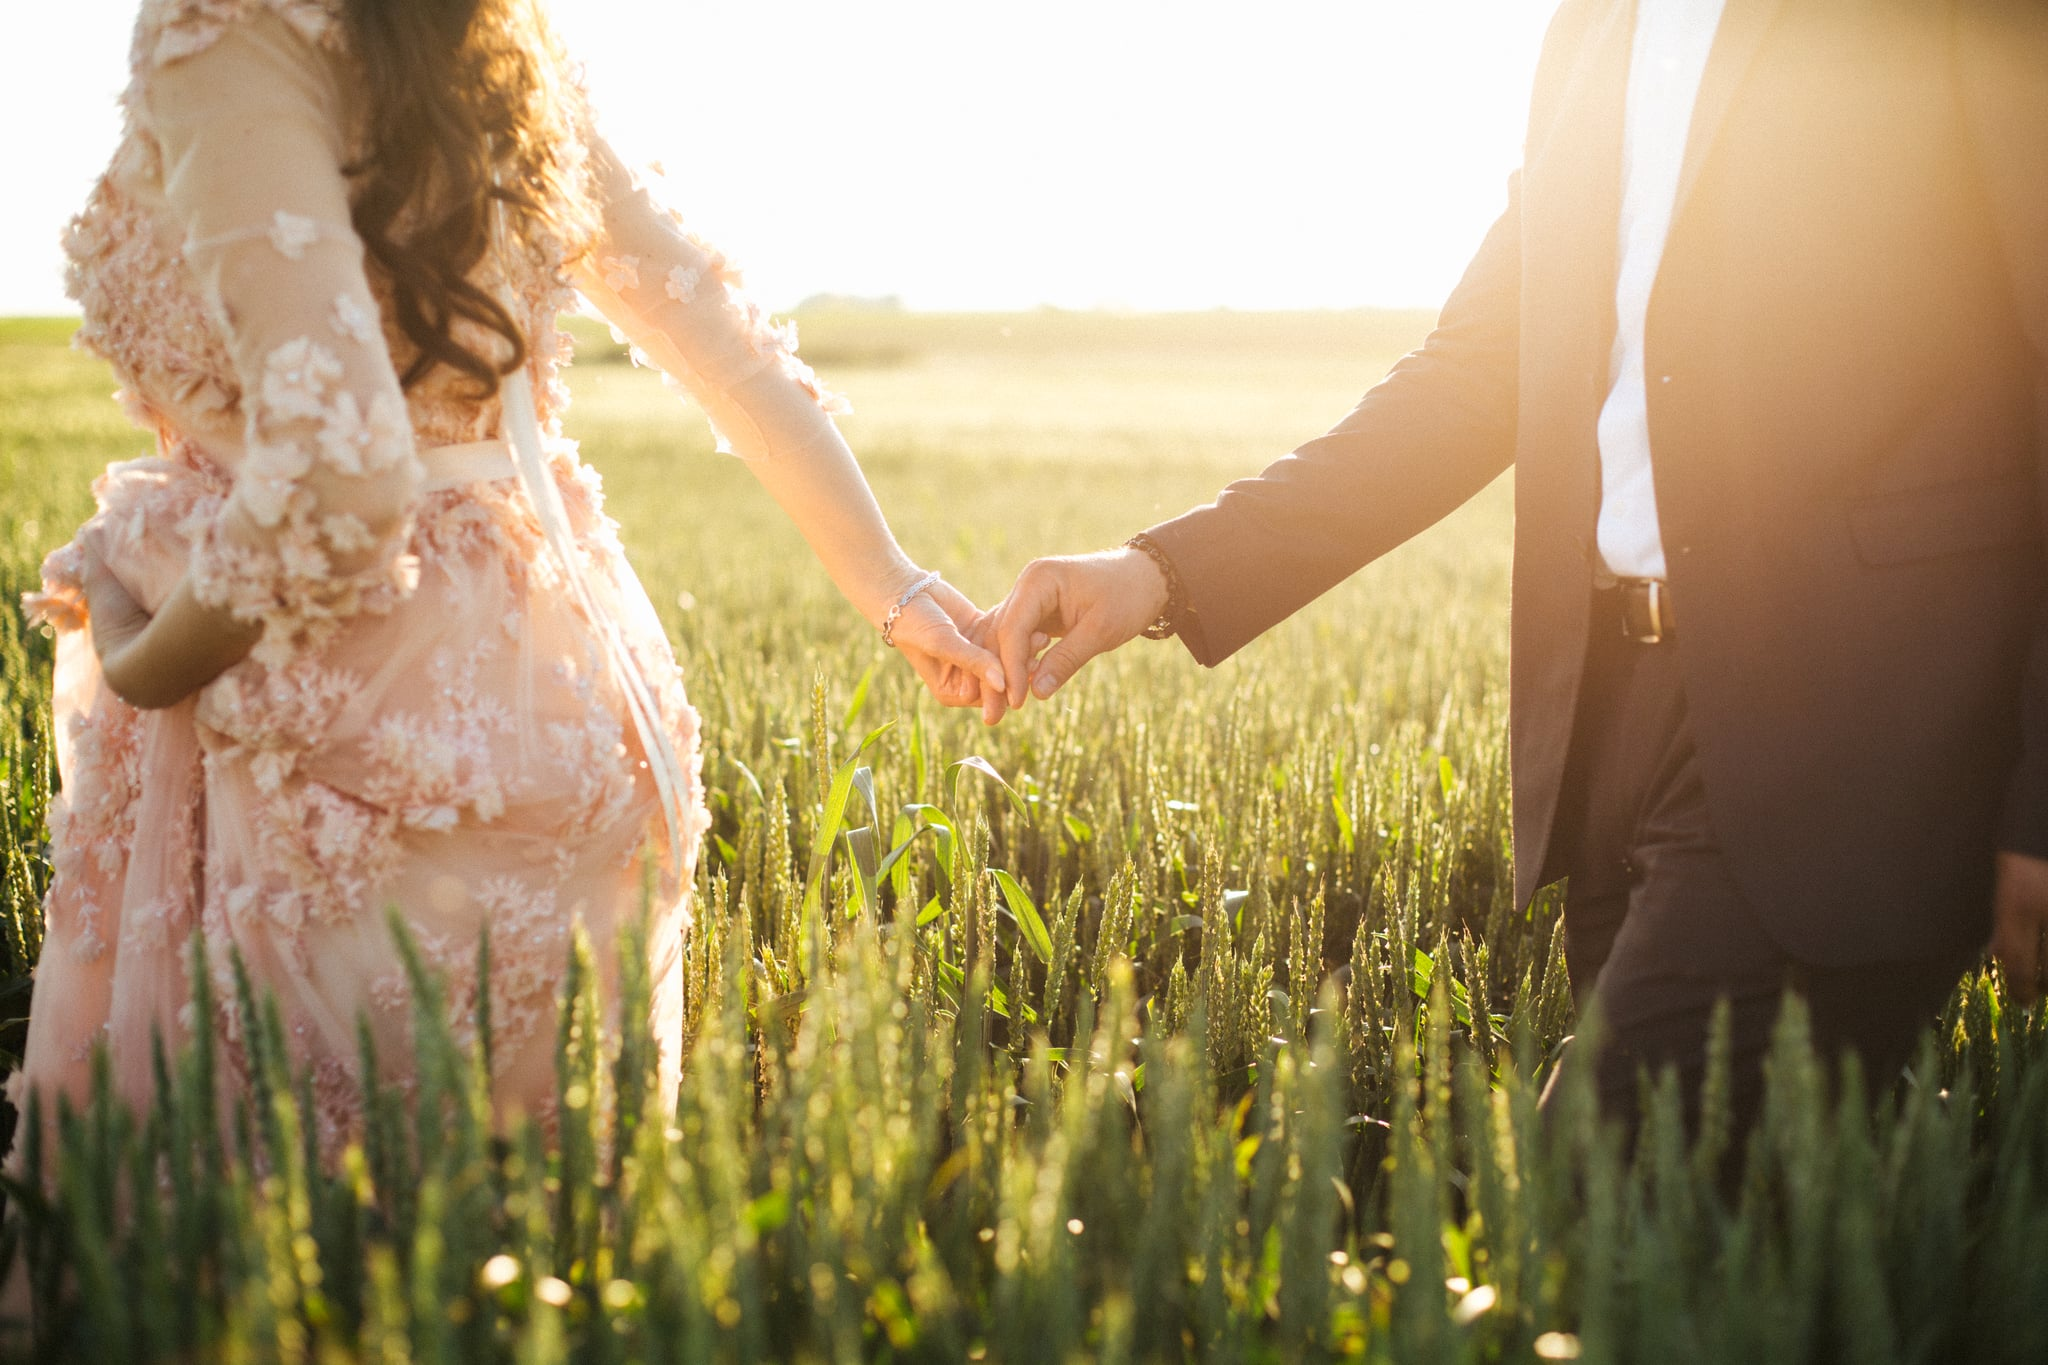 Bride holding grooms hand in field full of wheat